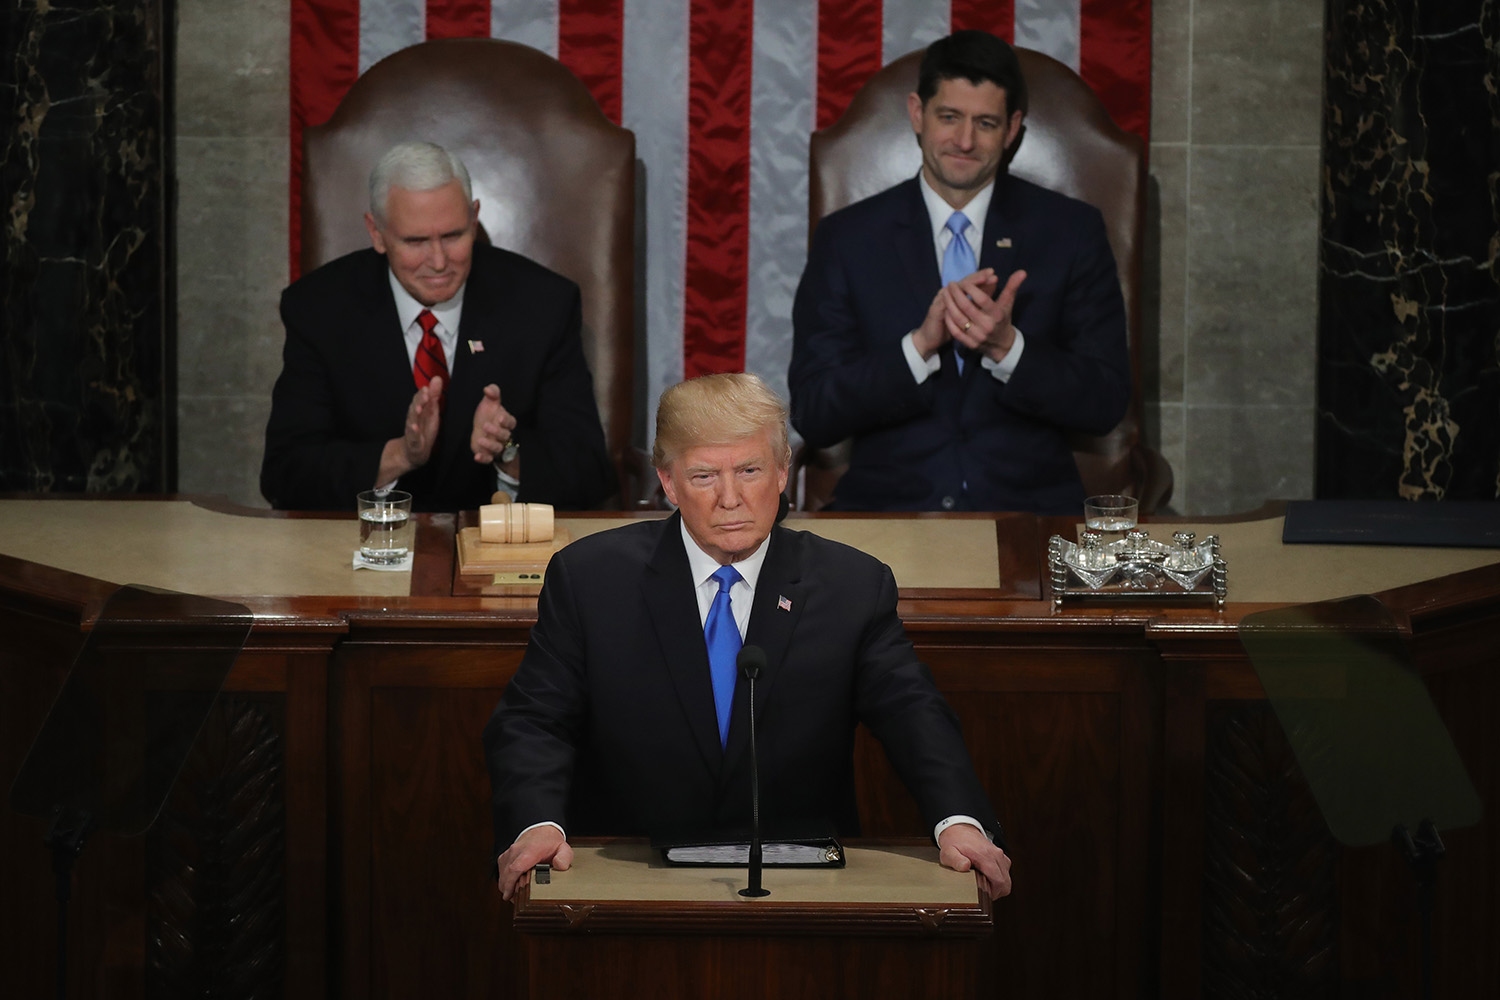 President Donald J. Trump delivering his first State of the Union address, January 30, 2018 in Washington, DC. (Credit: Chip Somodevilla/Getty Images)